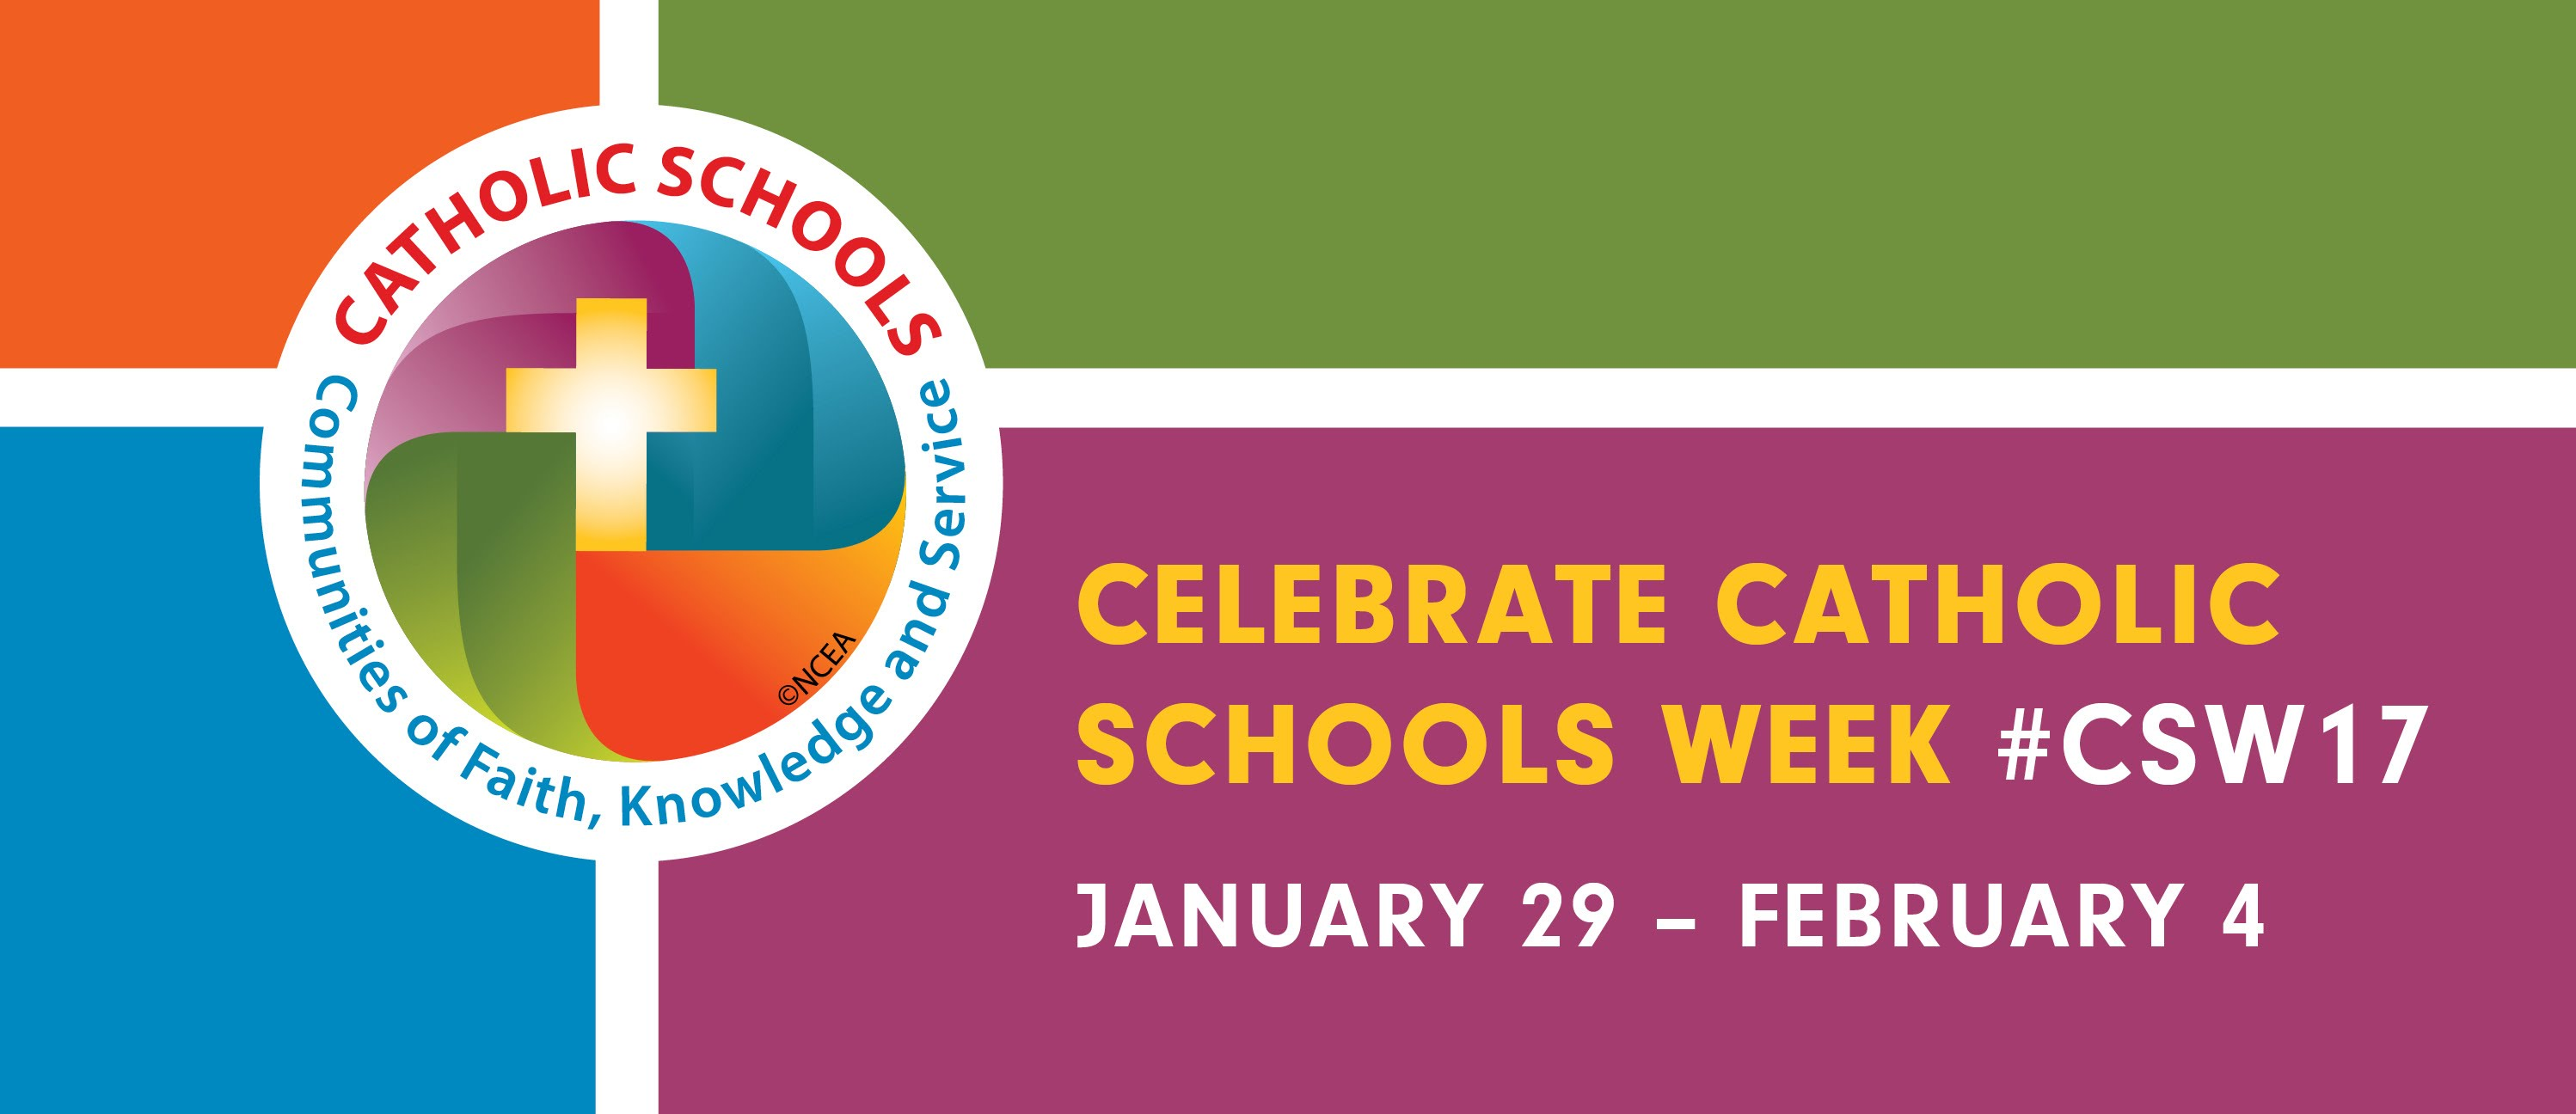 http://www.ncea.org/csw/Daily_Themes/CSW/Daily_Themes/Daily_Catholic_Schools_Week_Themes.aspx?hkey=9d1d6271-ab15-463b-86e0-592de1114016